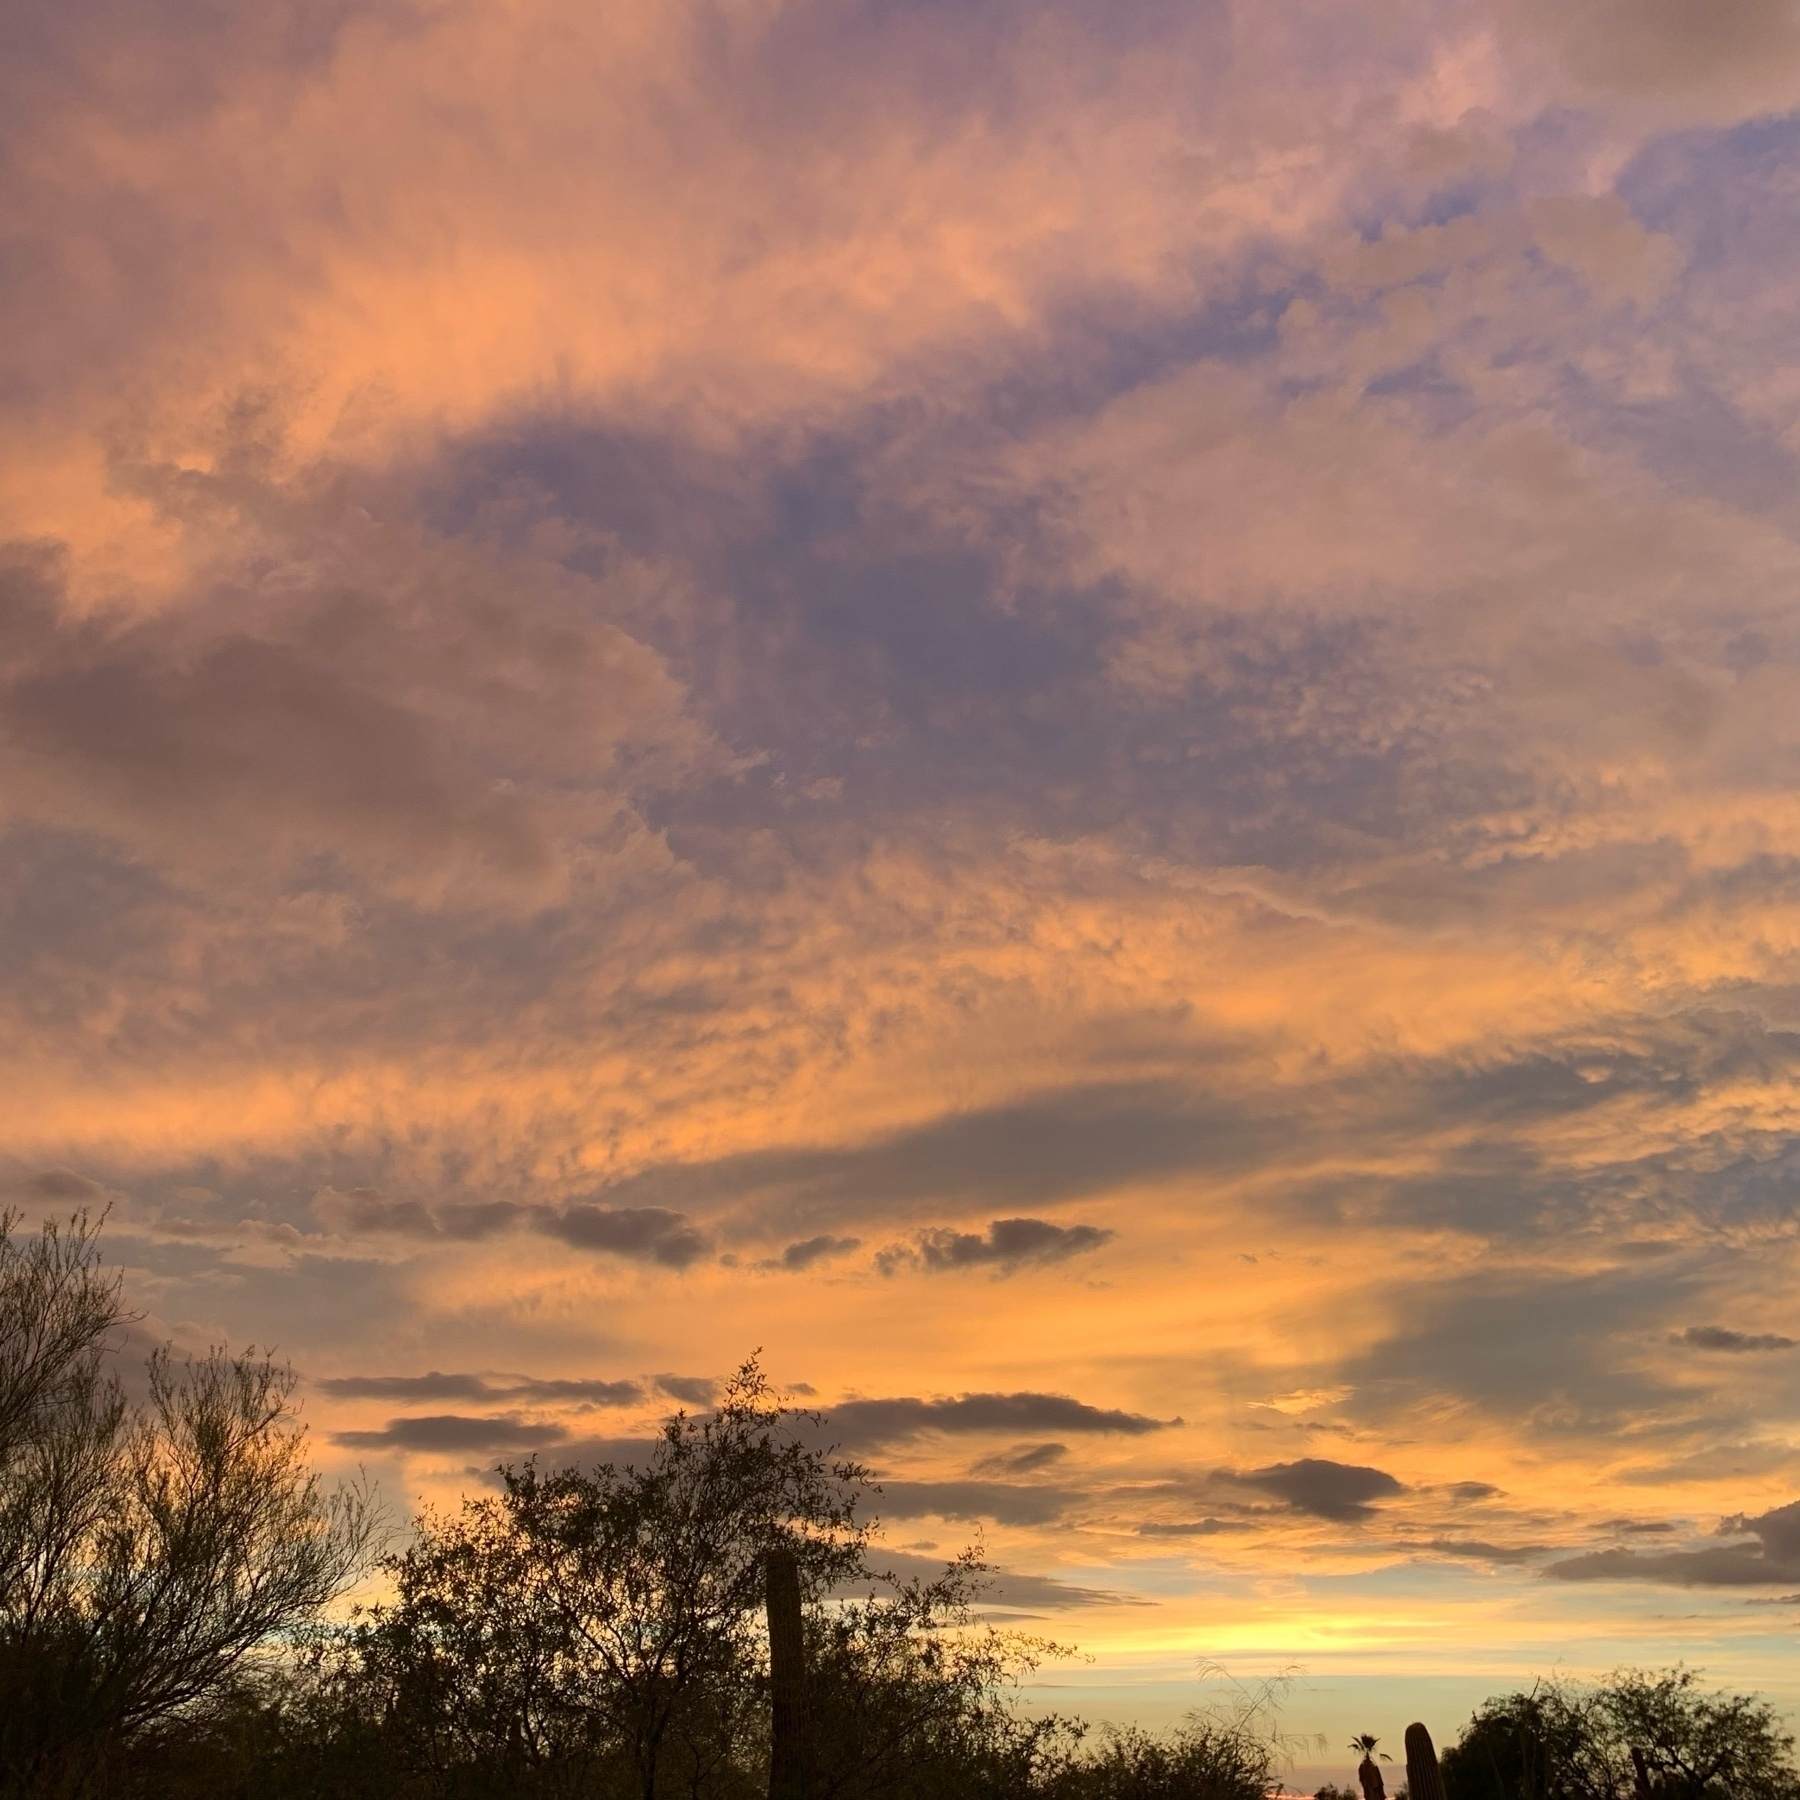 July sunset in Tucson